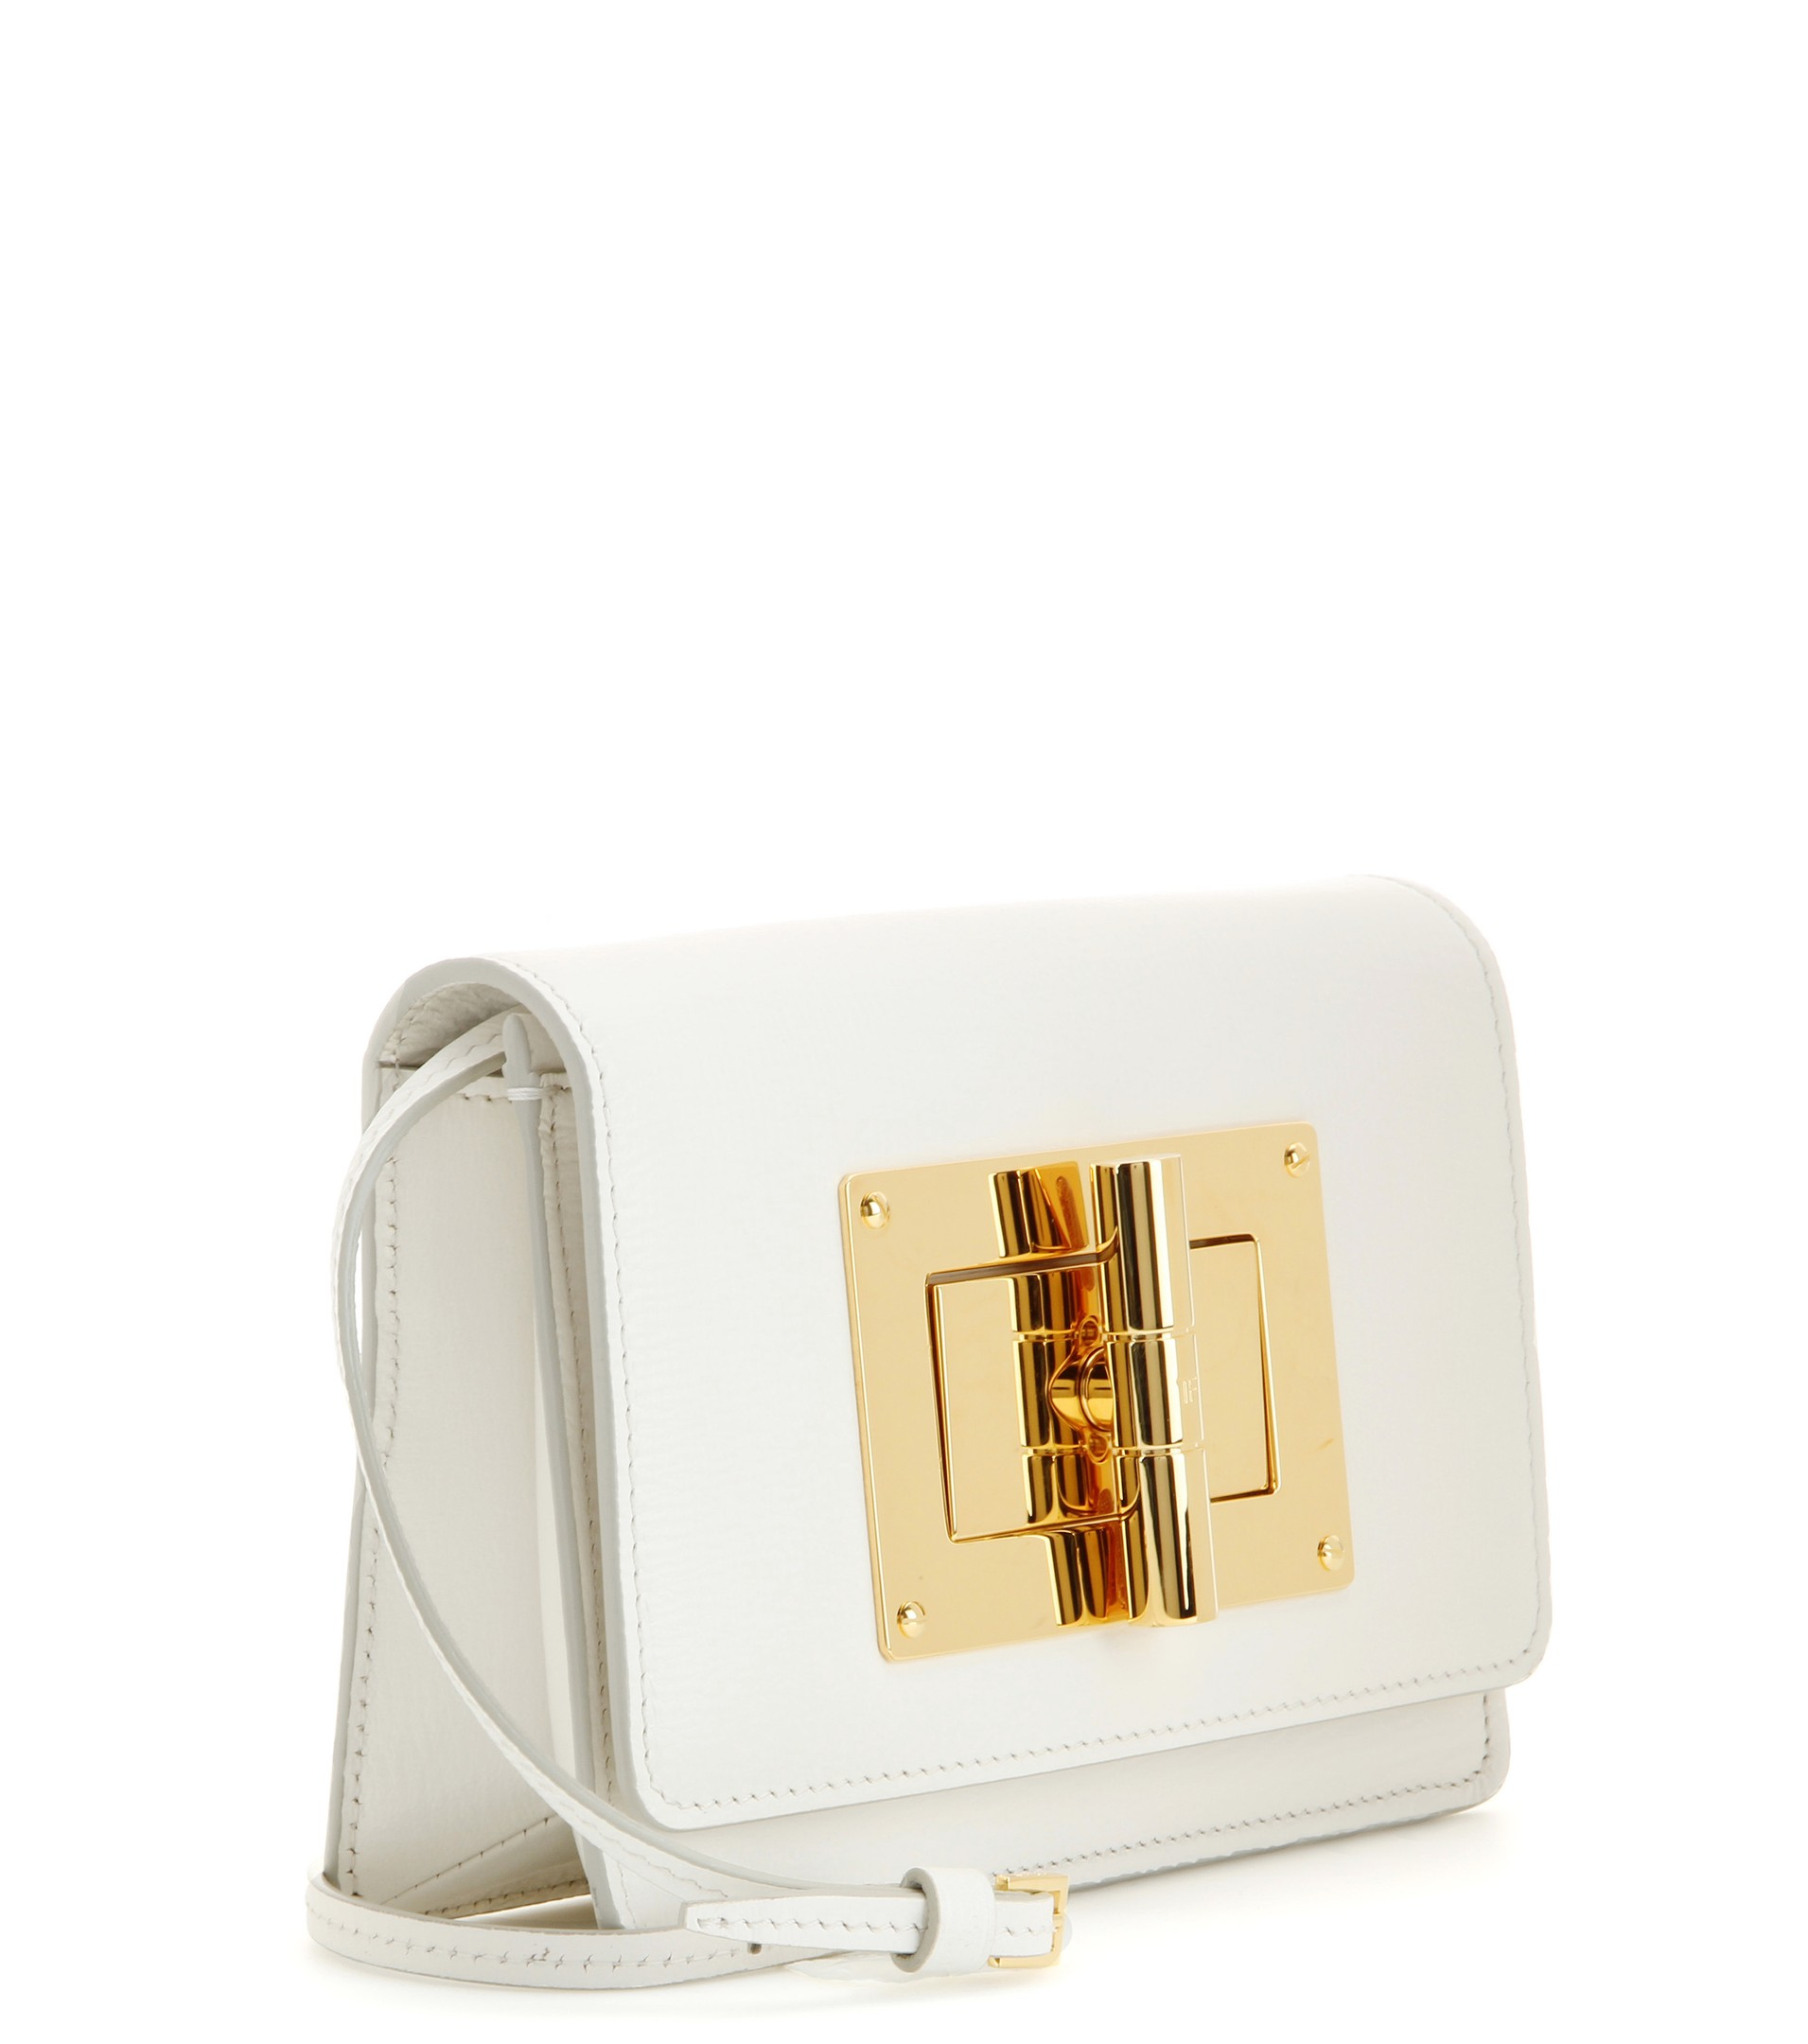 5d8eca471a53b Tom Ford Natalia Small Leather Shoulder Bag in White - Lyst